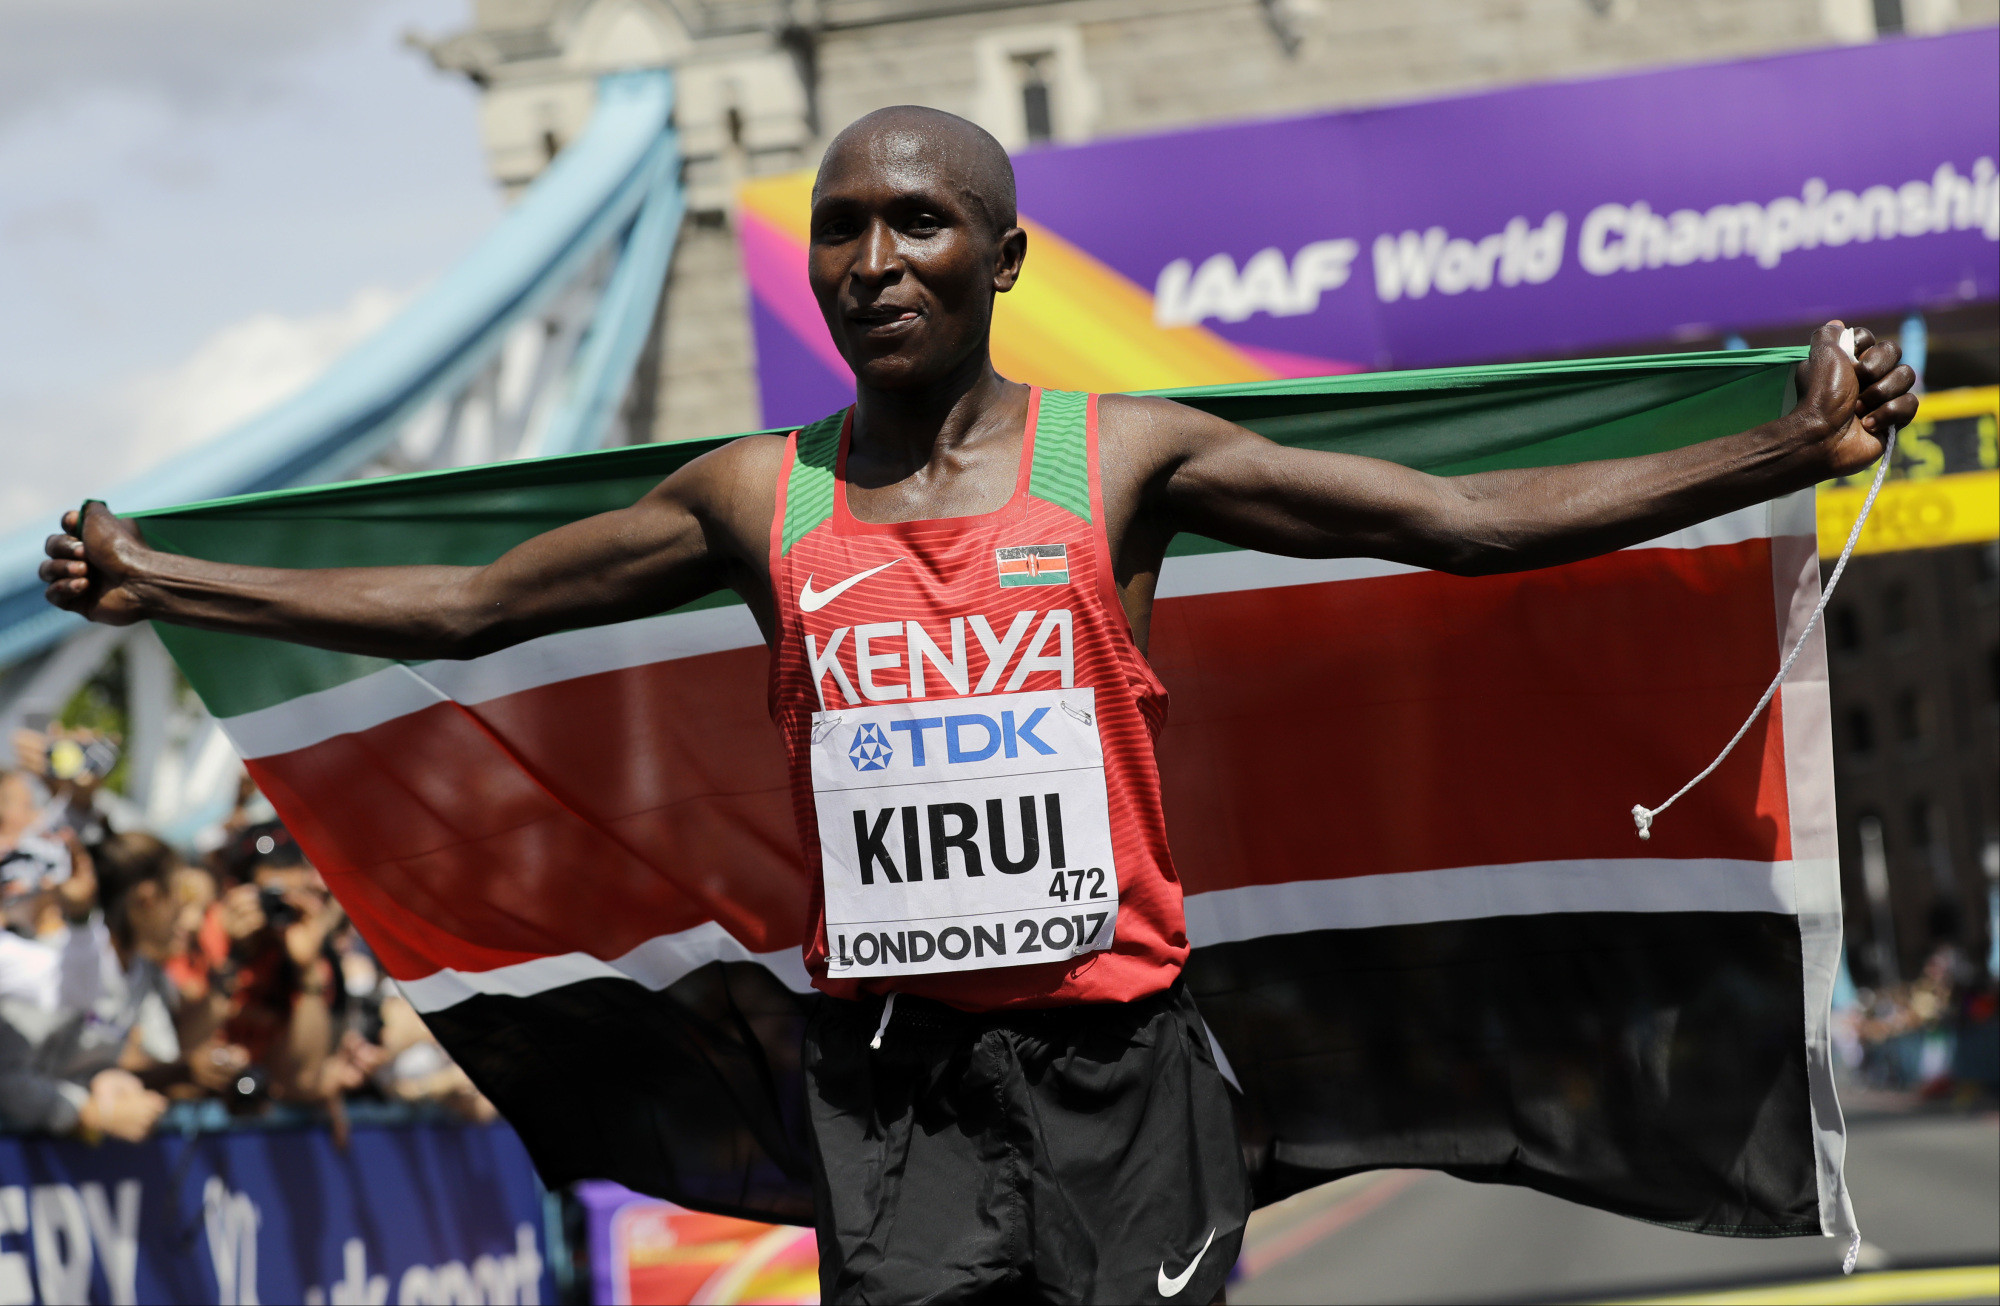 Kirui aiming for further marathon greatness